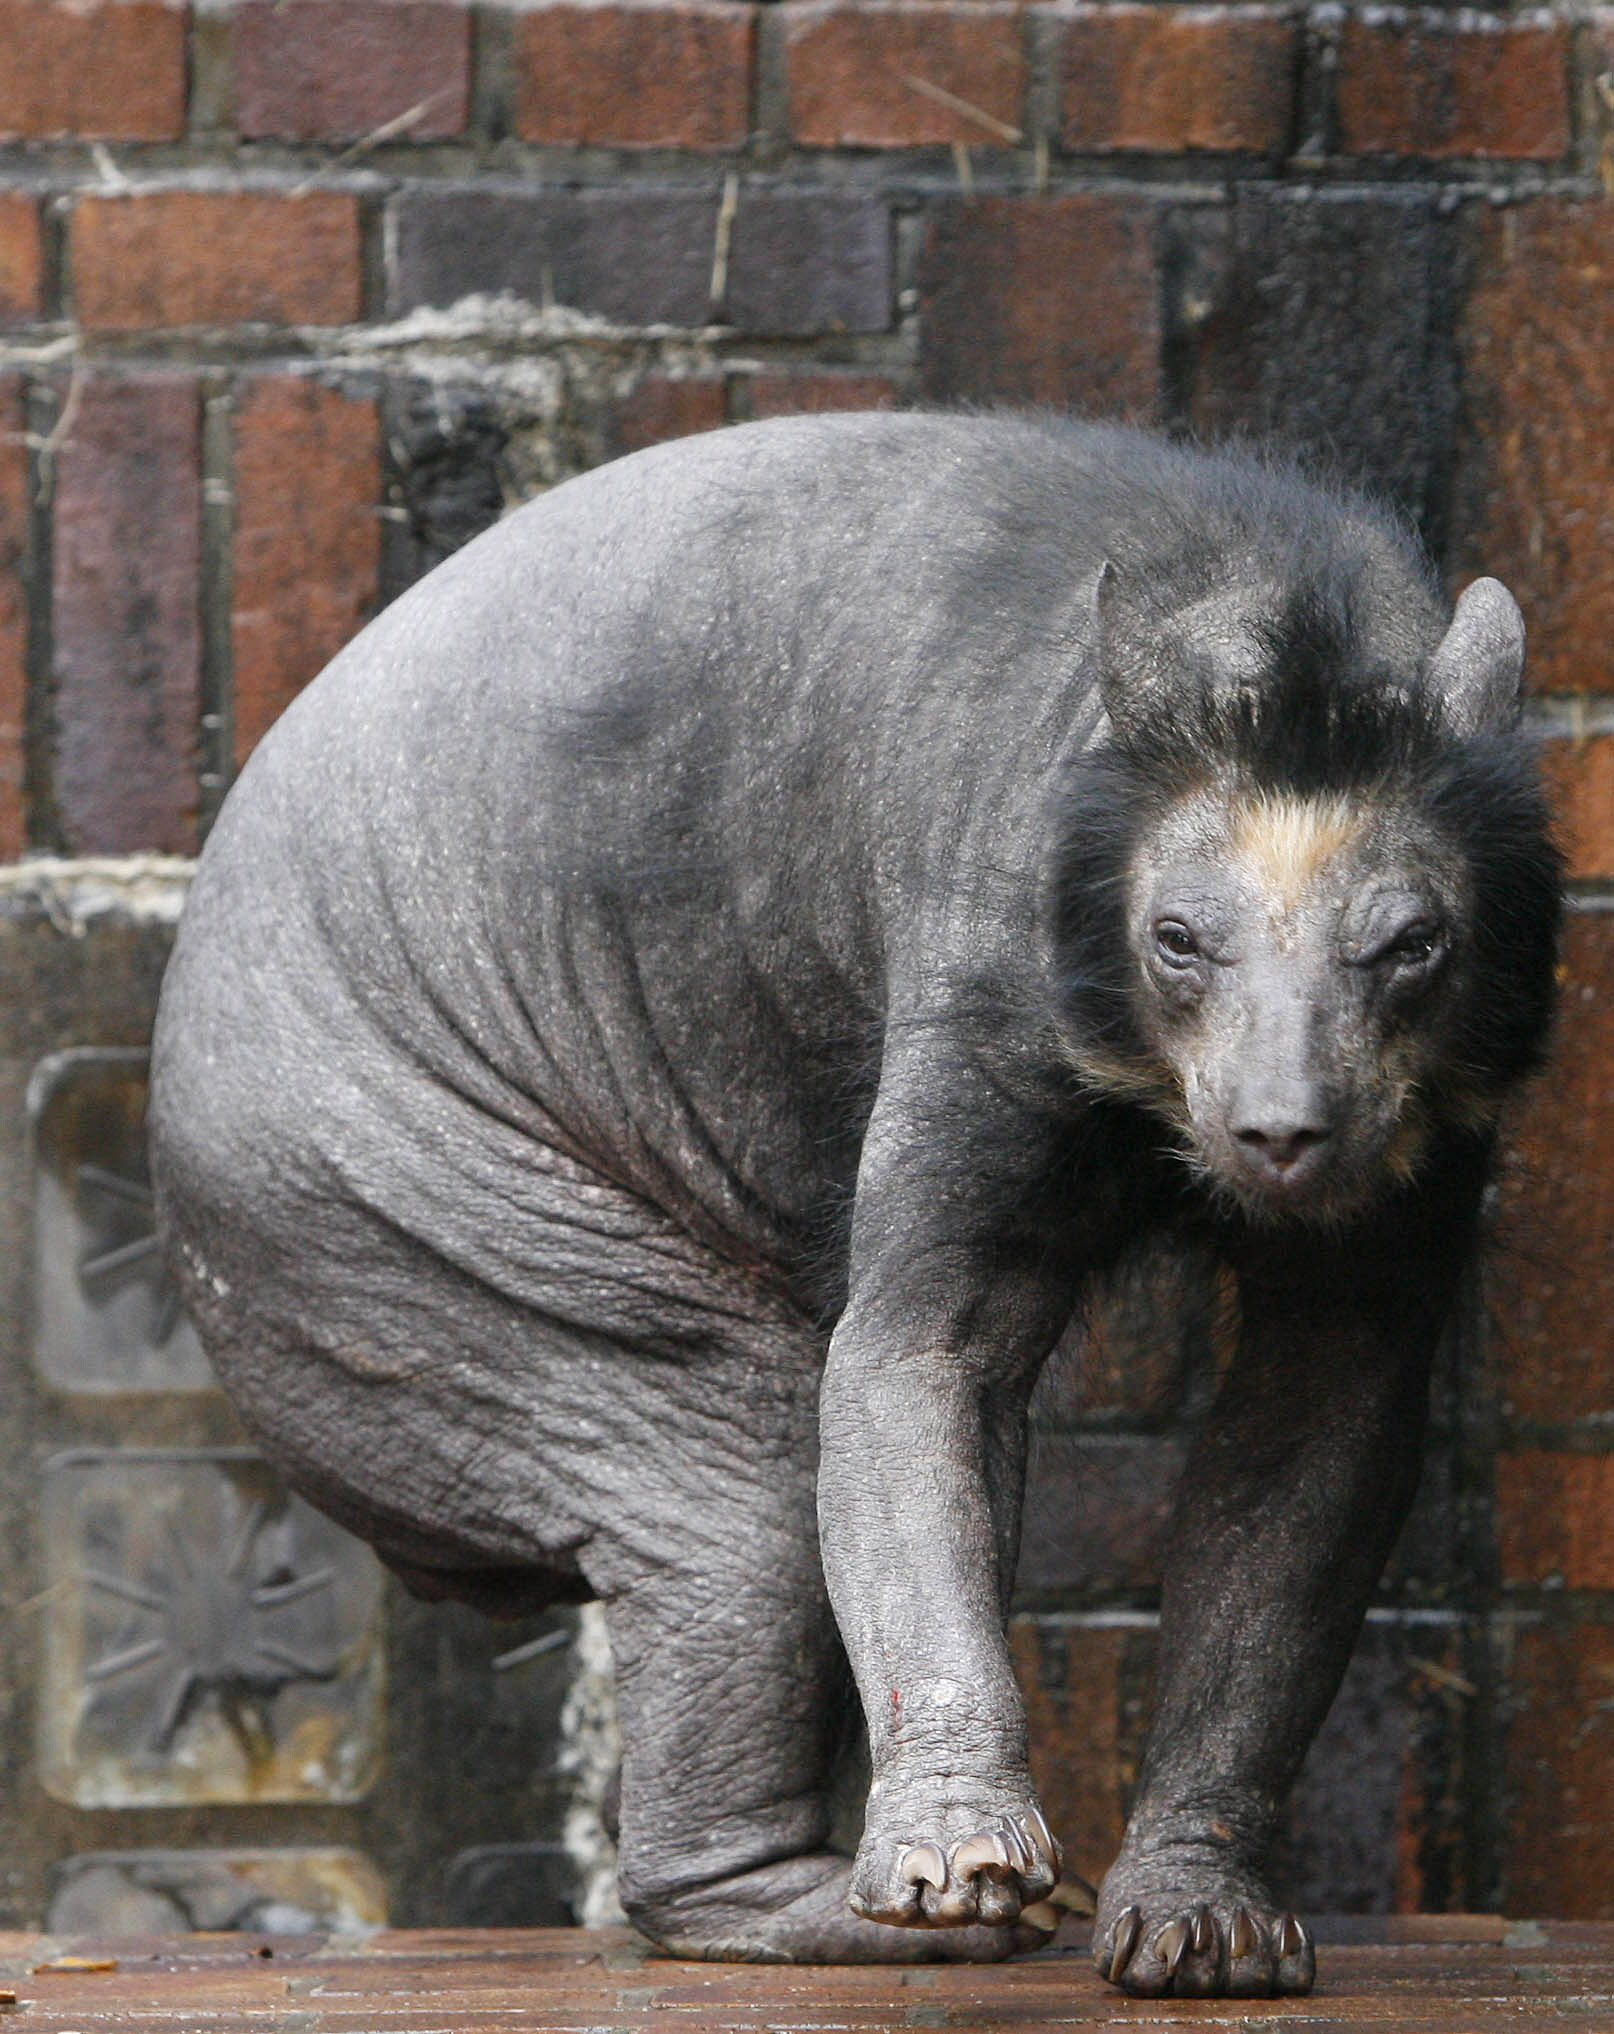 A Spectacled bear named Dolores walks around her enclosure at the zoo in the eastern German city of Leipzig on November 4, 2009. The animal is suffering from hair loss. AFP PHOTO DDP / SEBASTIAN WILLNOW GERMANY OUT (Photo credit should read SEBASTIAN WILLNOW/AFP/Getty Images)